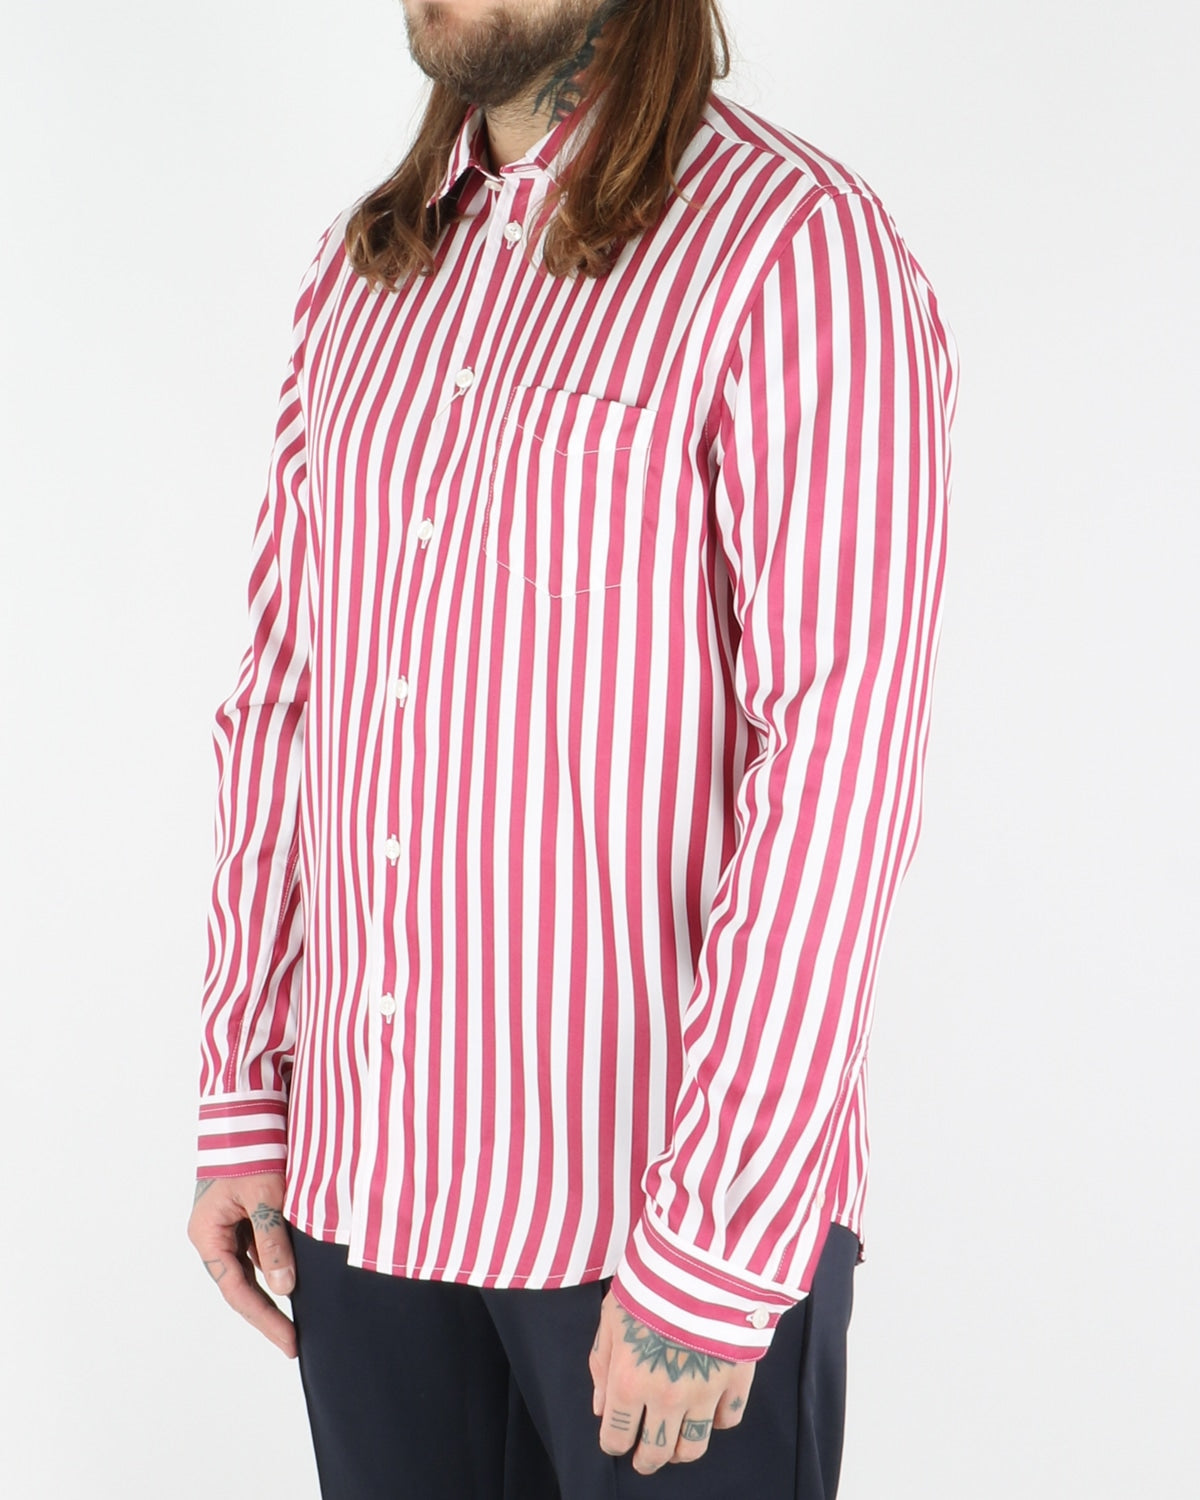 samsoe samsoe_liam shirt_brick red stripes_view_2_3